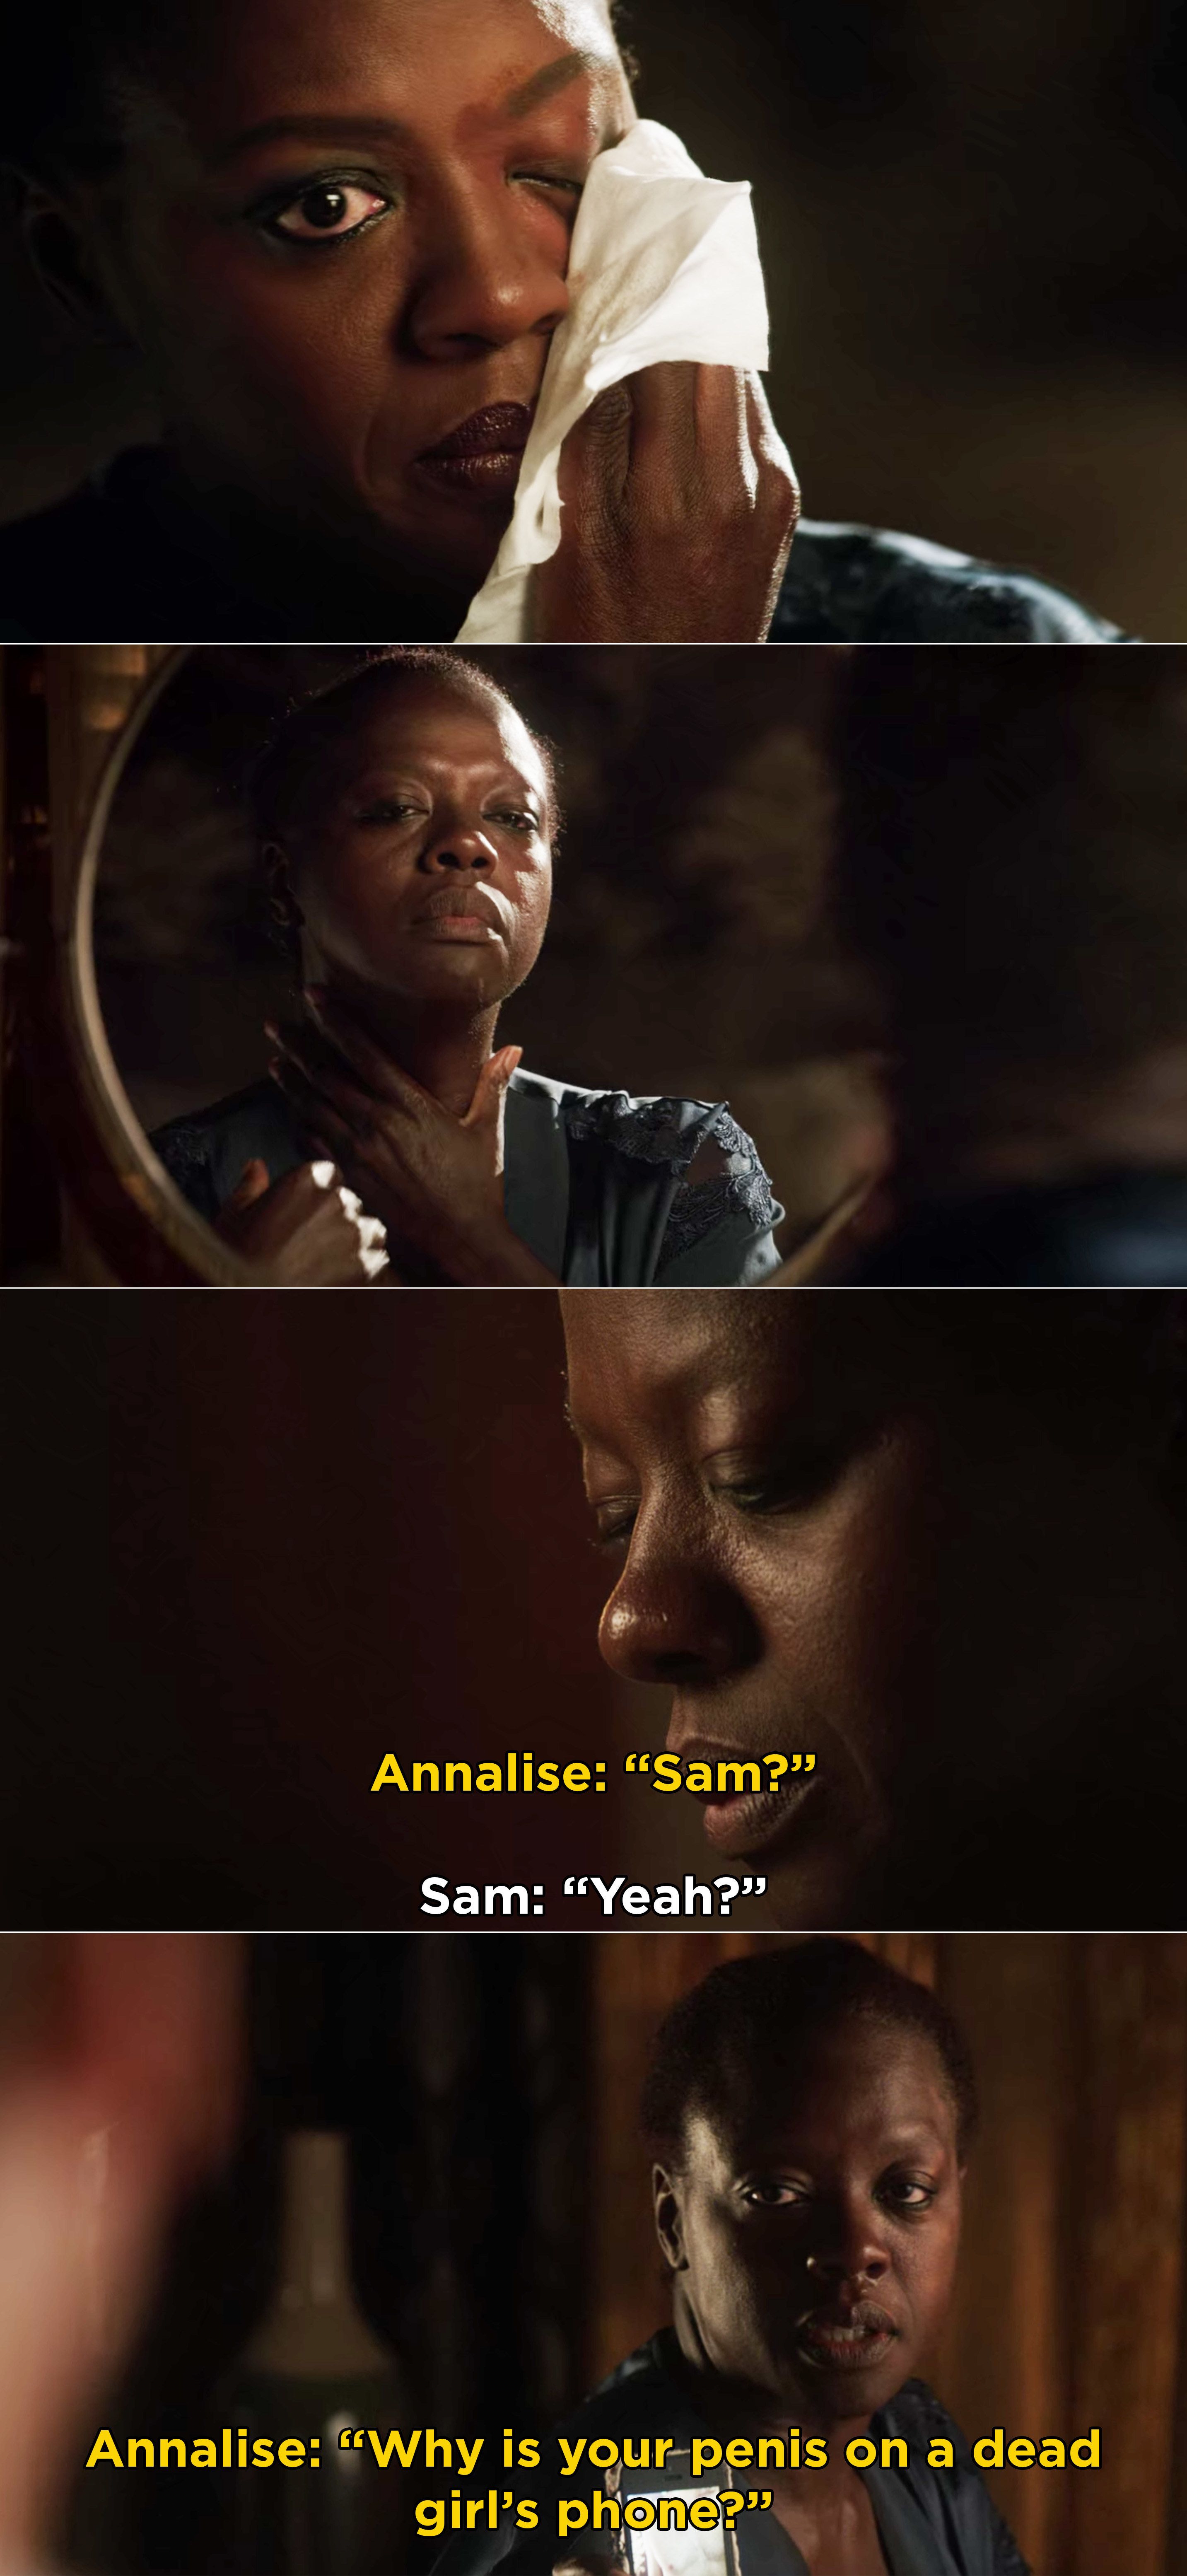 """Annalise asking Sam, """"Why is your penis on a dead girl's phone?"""""""